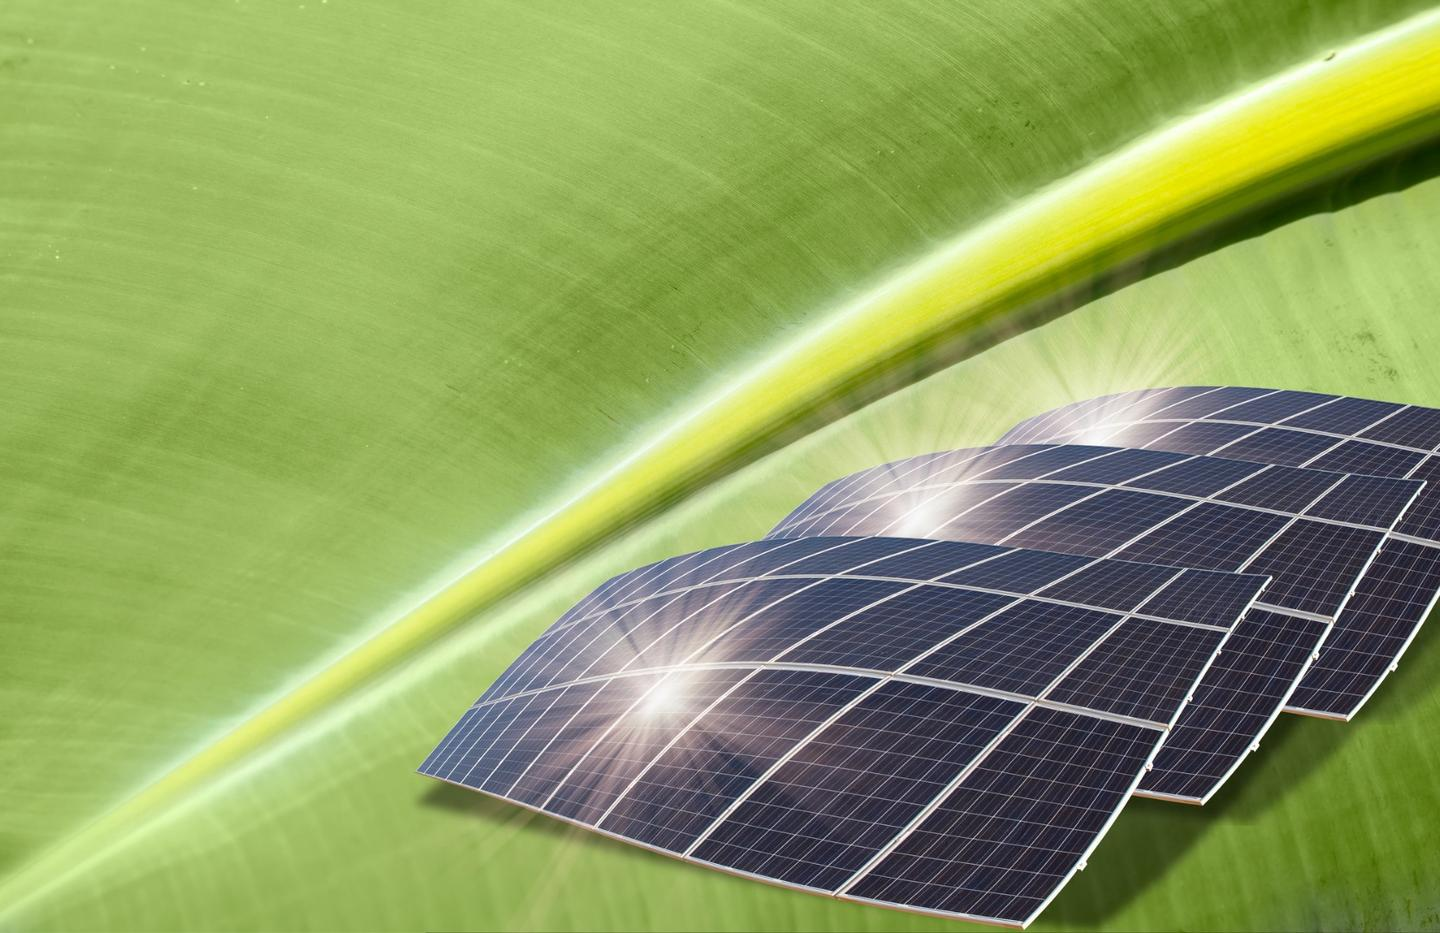 """University of Exeter researchers have created a semiconductor material that is """"the strongest candidate yet for renewable hydrogen generation"""""""